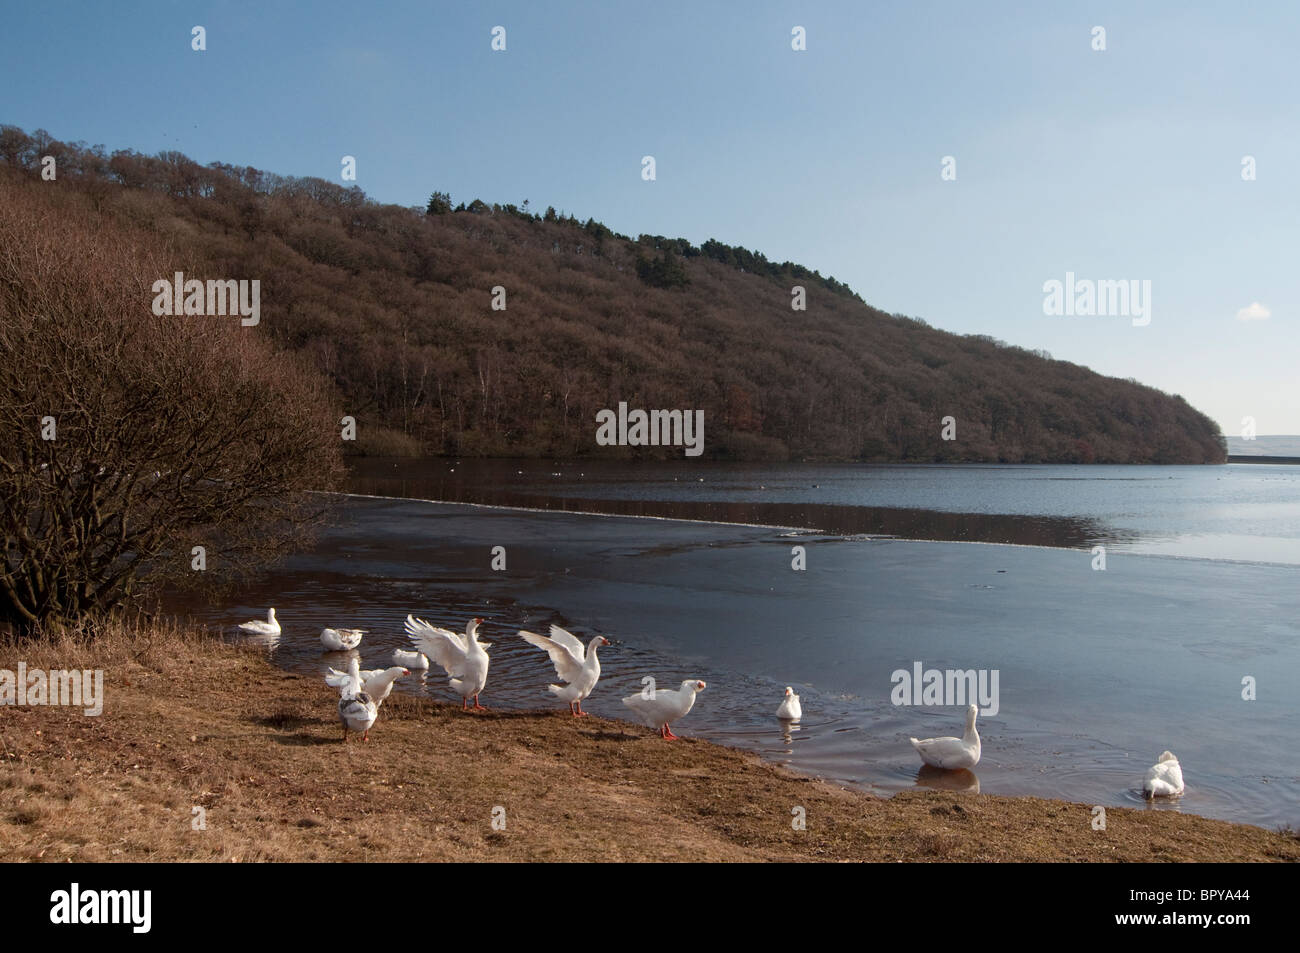 White geese sunbathe along Tunstall Reservoir in County Durham. - Stock Image